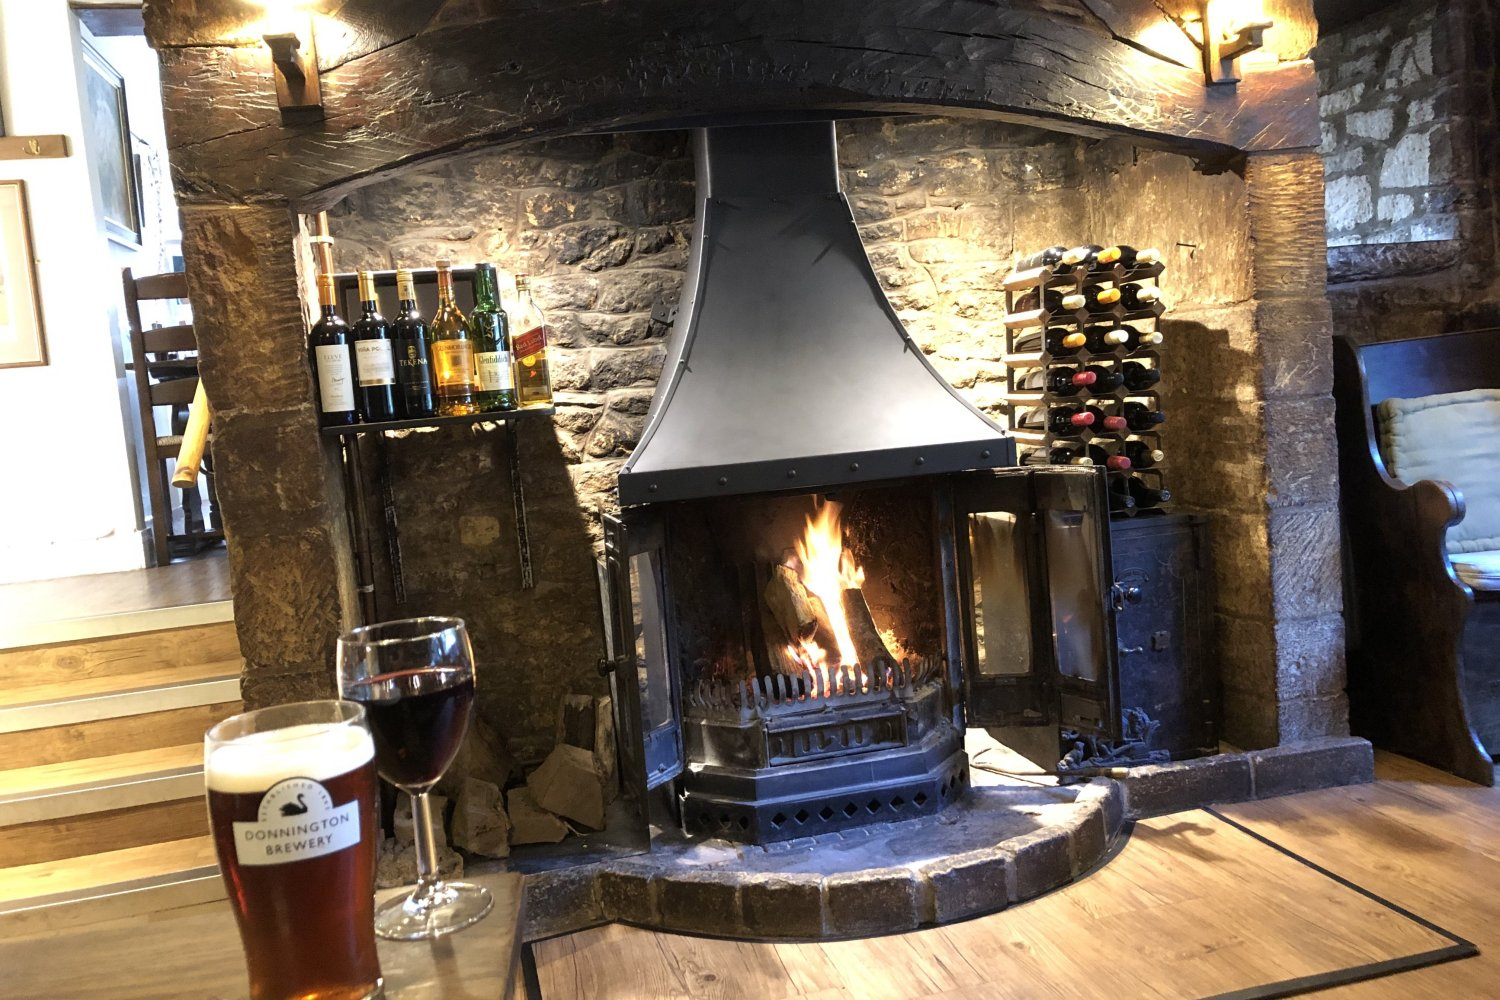 The Plough at Ford, Cotswold pub food, Sunday lunch & drink at its best